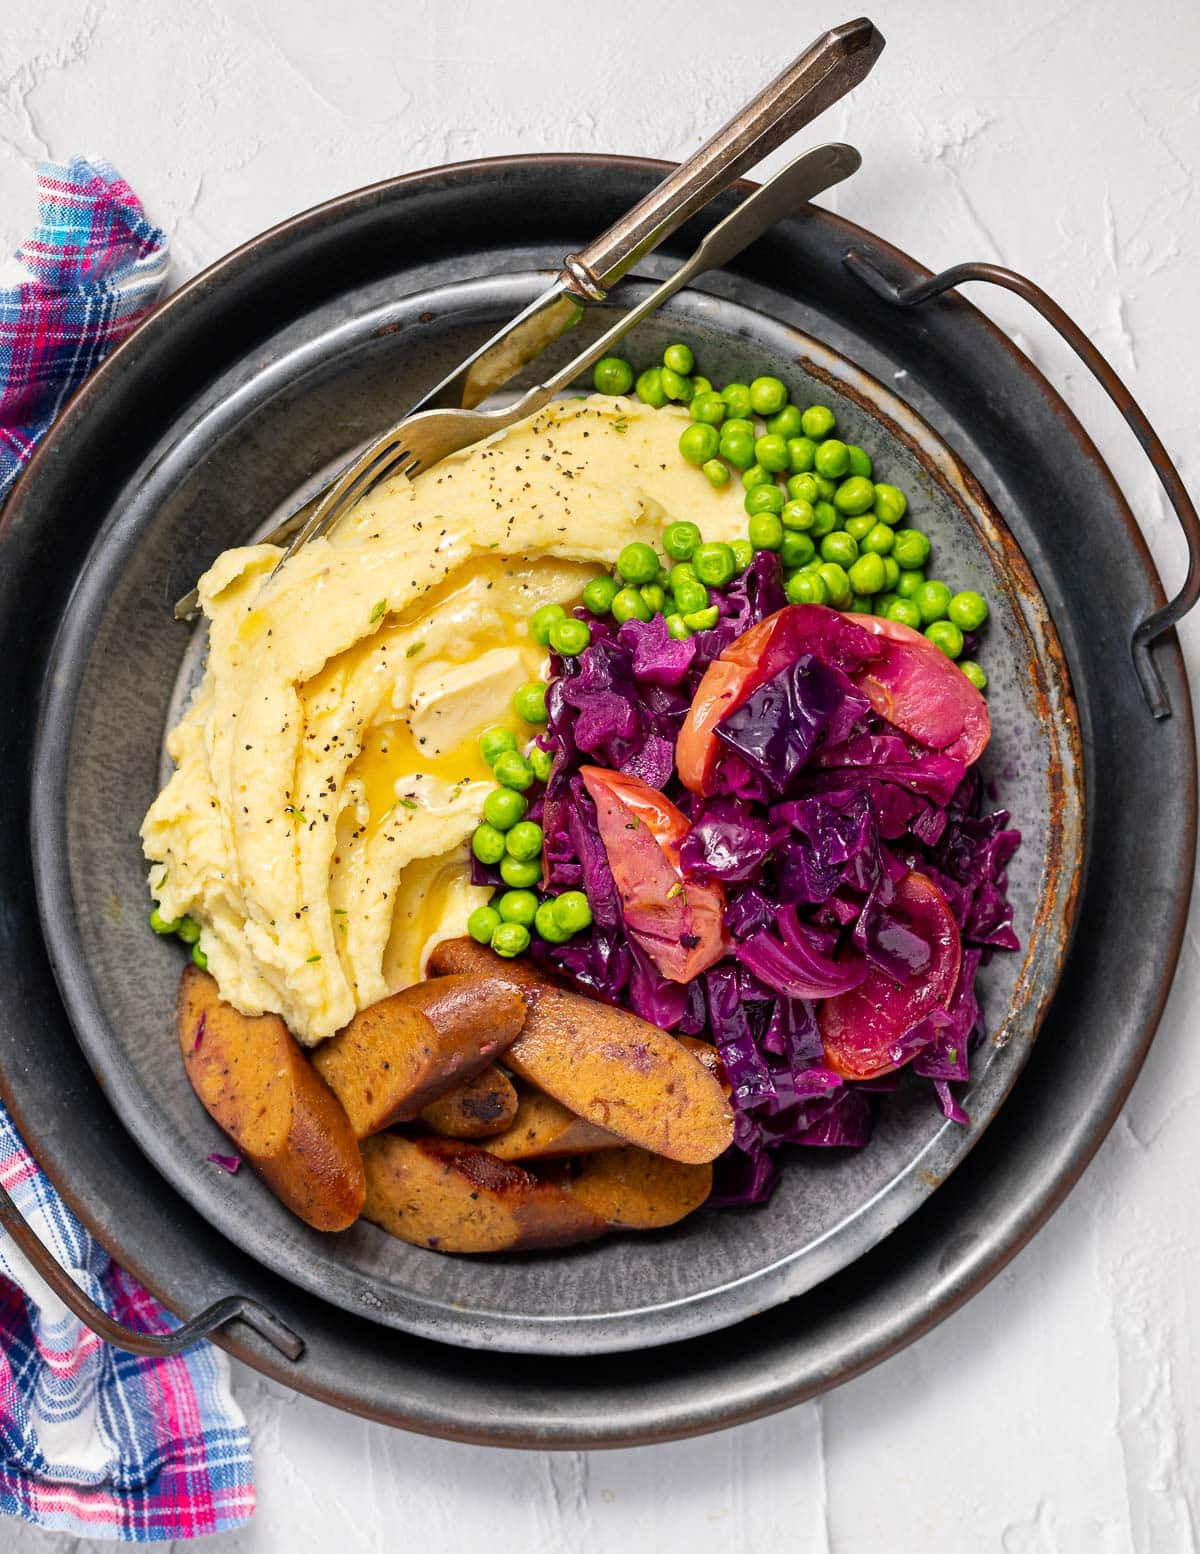 a plate of mashed potato, sausage, red cabbage and peas